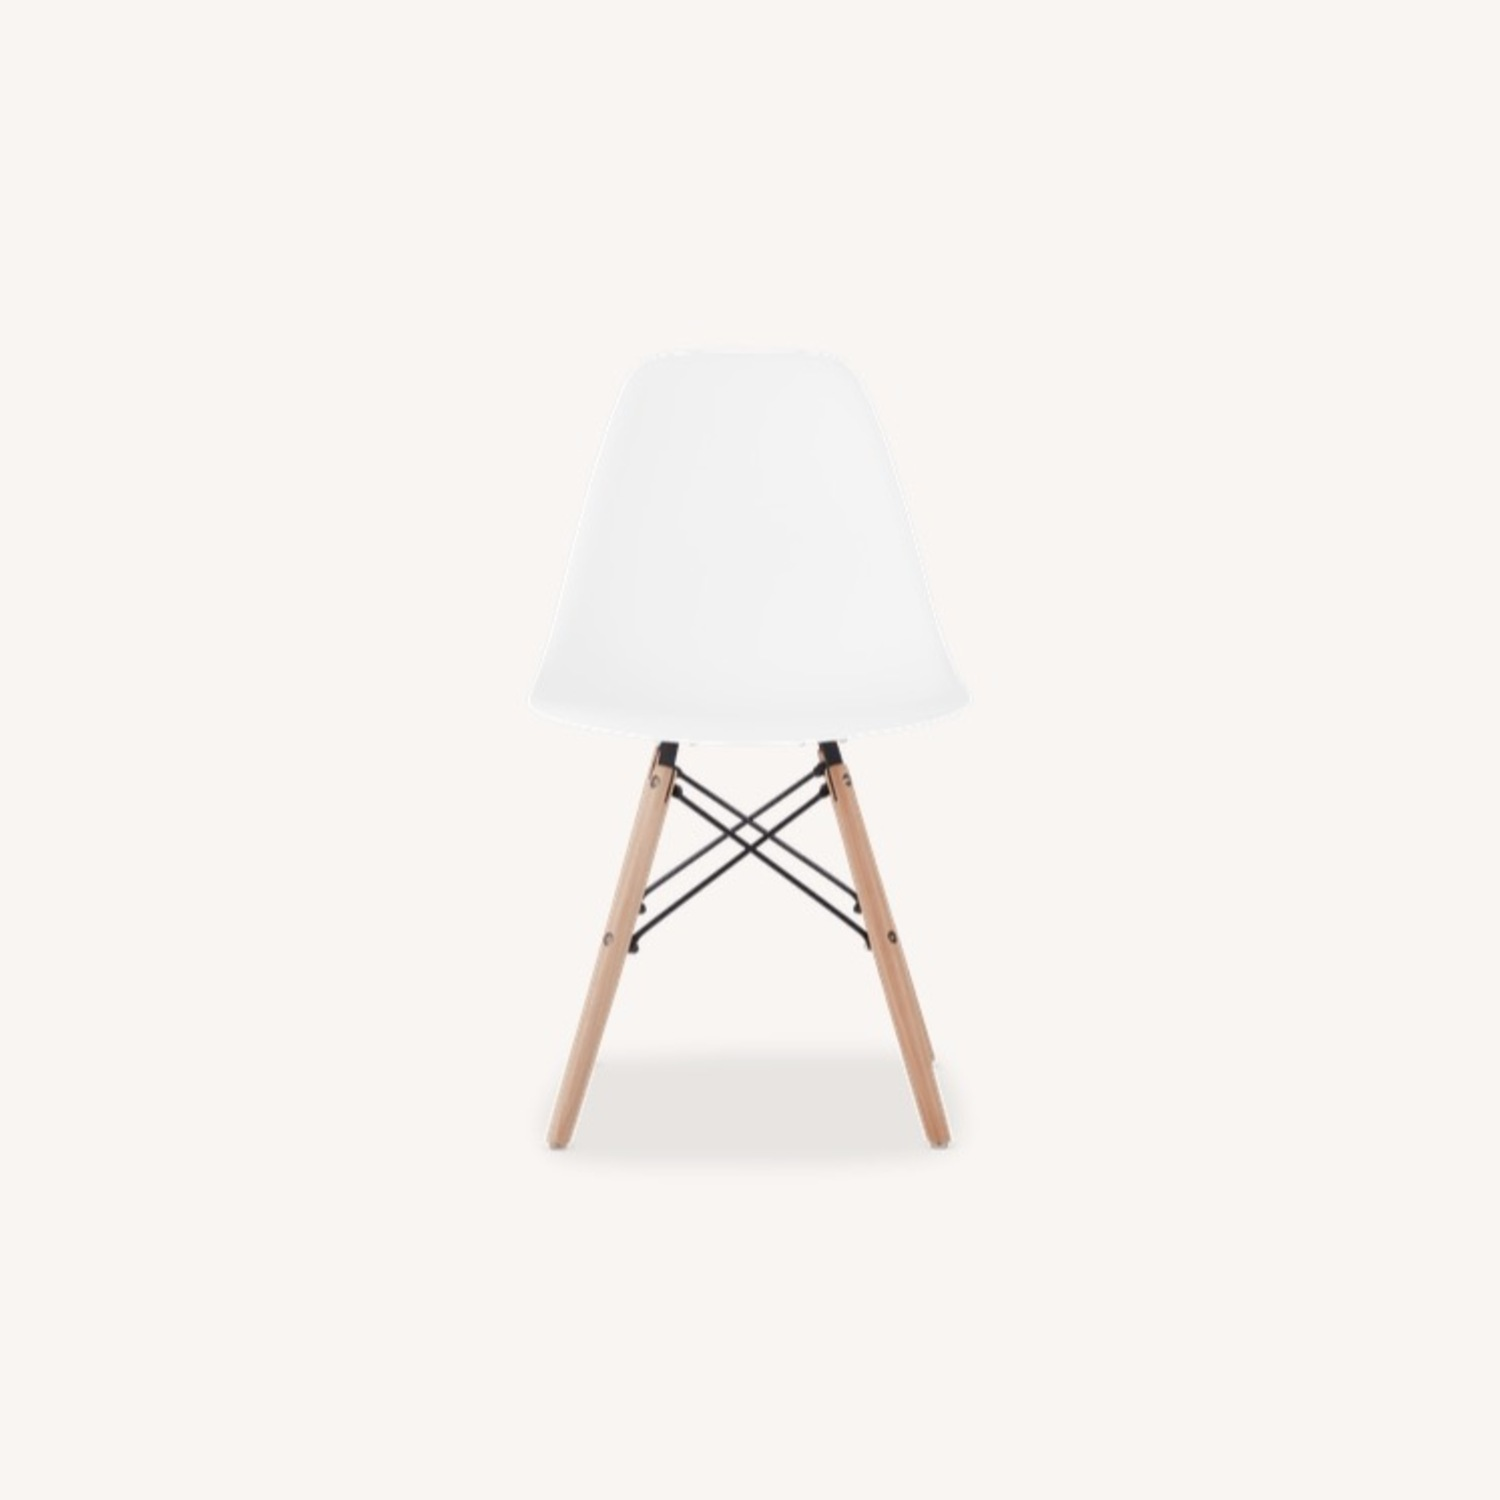 Scandinavian Stlye Dining Table and Chairs - image-4